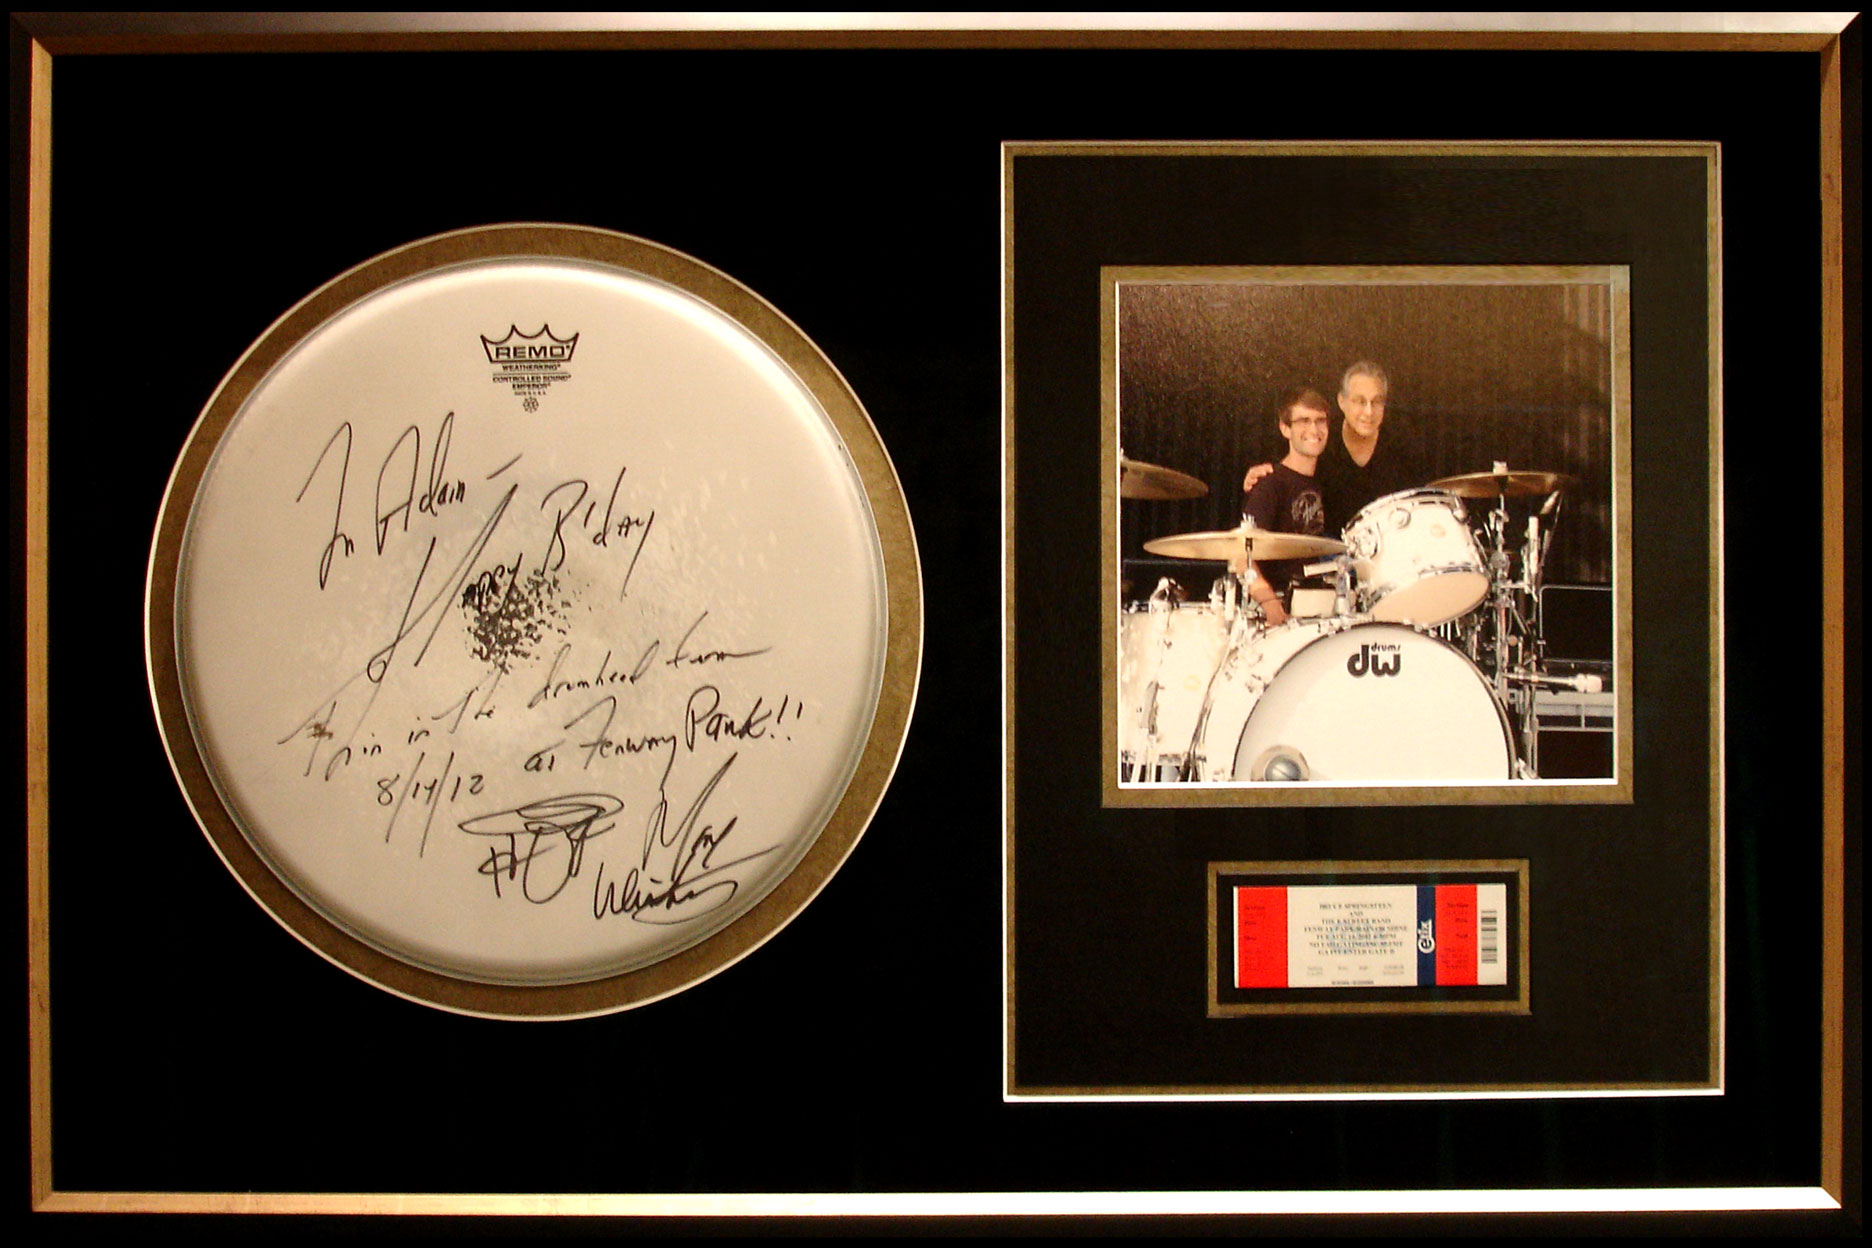 A signed drumhead to a Fan